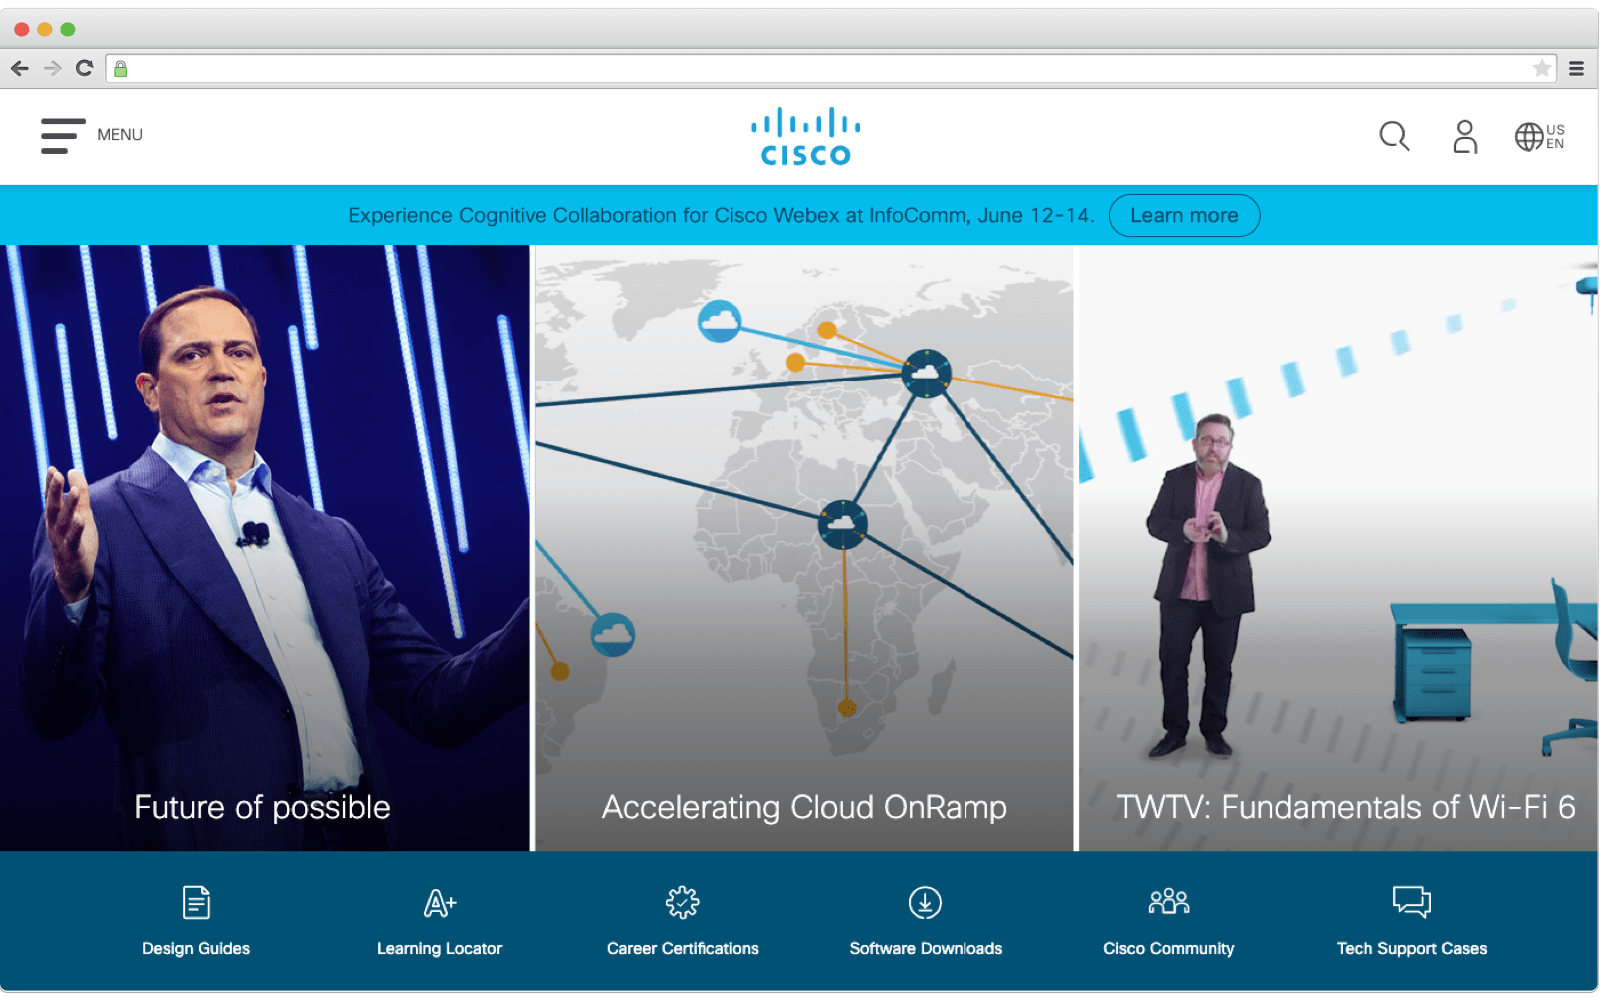 How Cisco uses their B2B CRM system